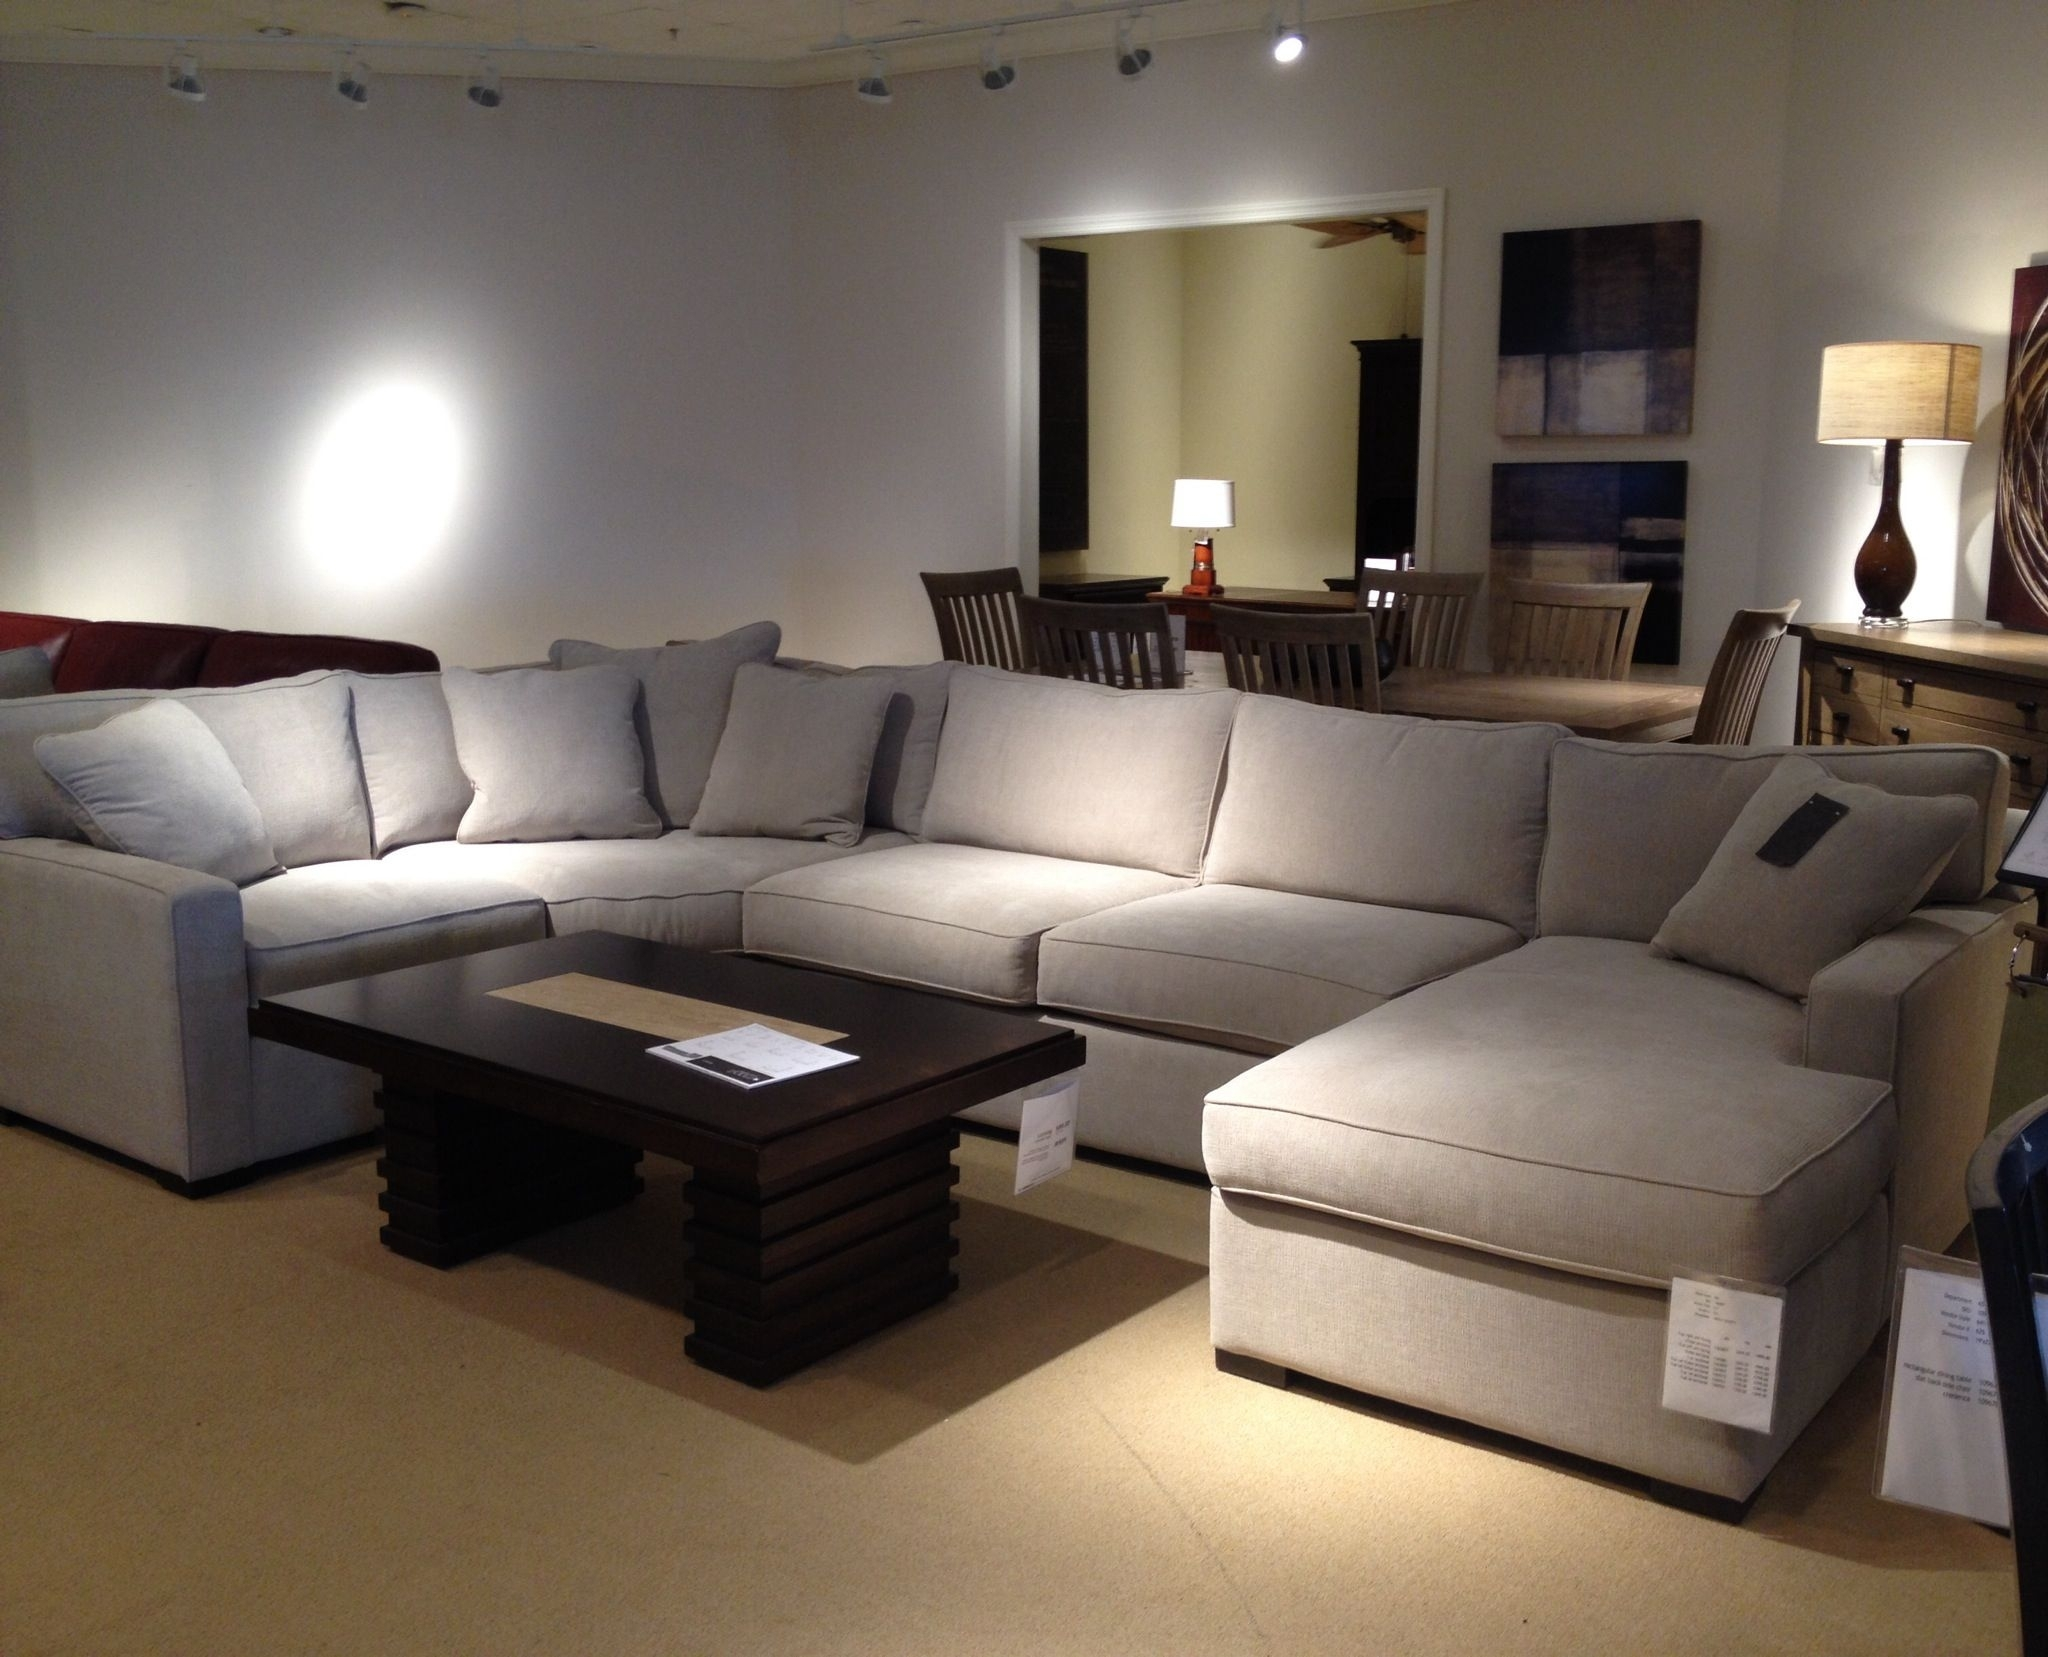 Radley 4 Piece Sectional Sofa From Macys (View 10 of 10)